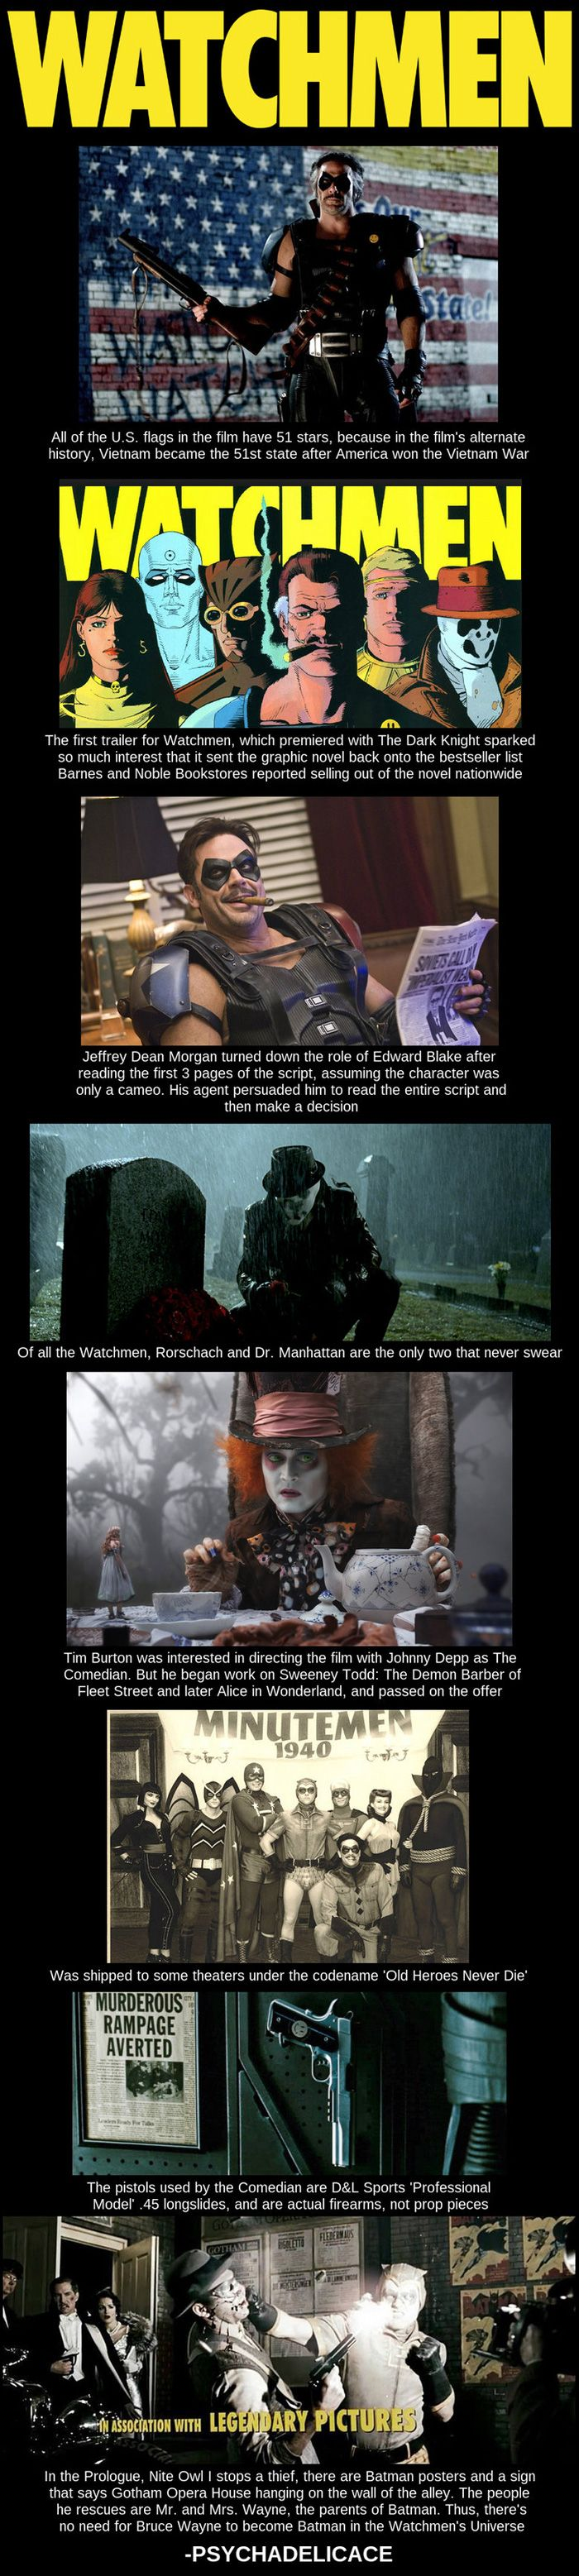 Watchmen Facts http://geekxgirls.com/article.php?ID=2901